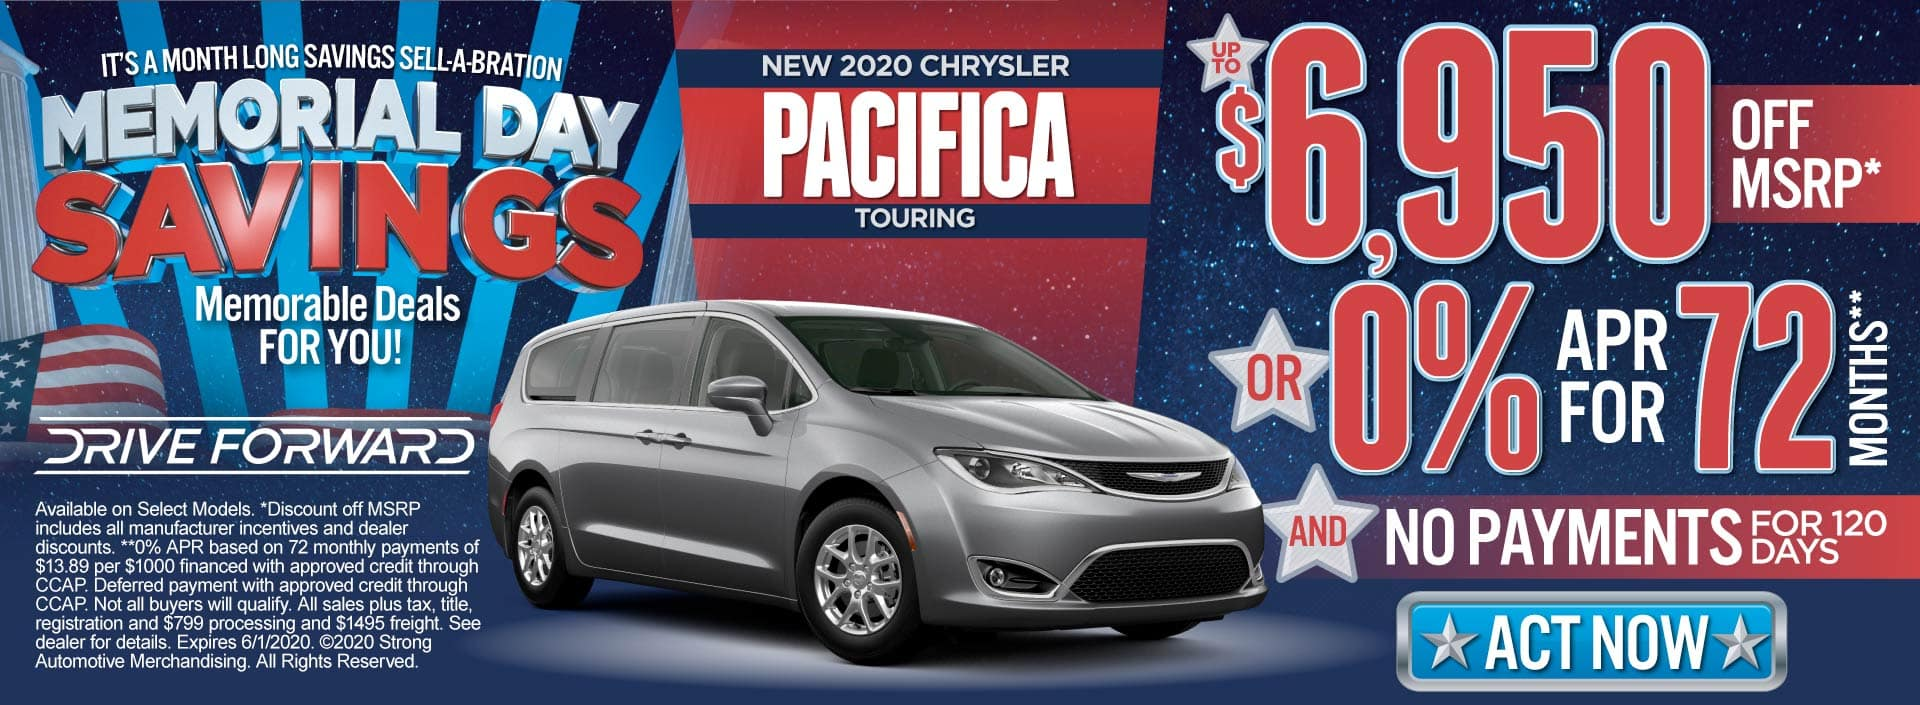 New 2020 Chrysler Pacifica - up to $6,950 off MSRP or 0% for 72 months and No Payments for 120 Days - Click to View Inventory